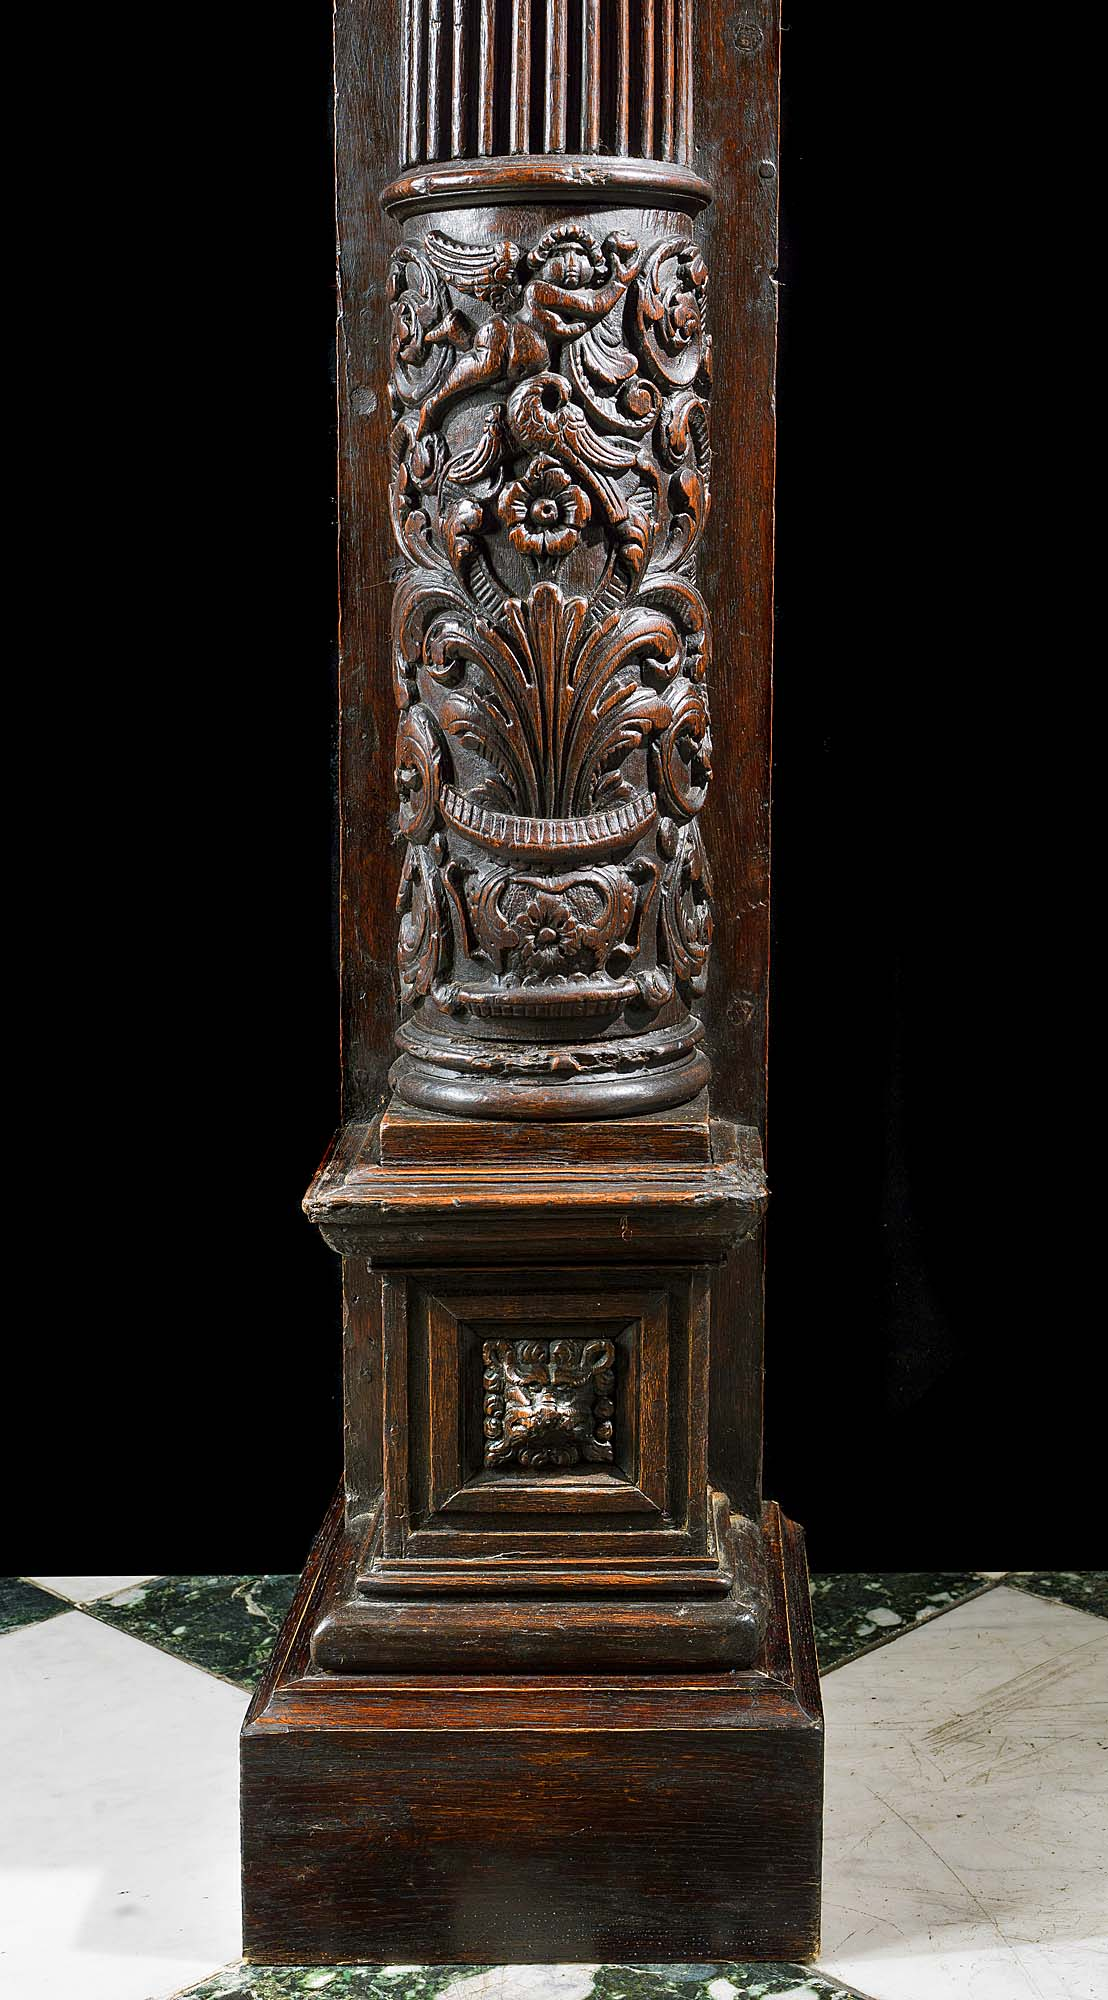 A French Renaissance style carved oak fireplace surround.